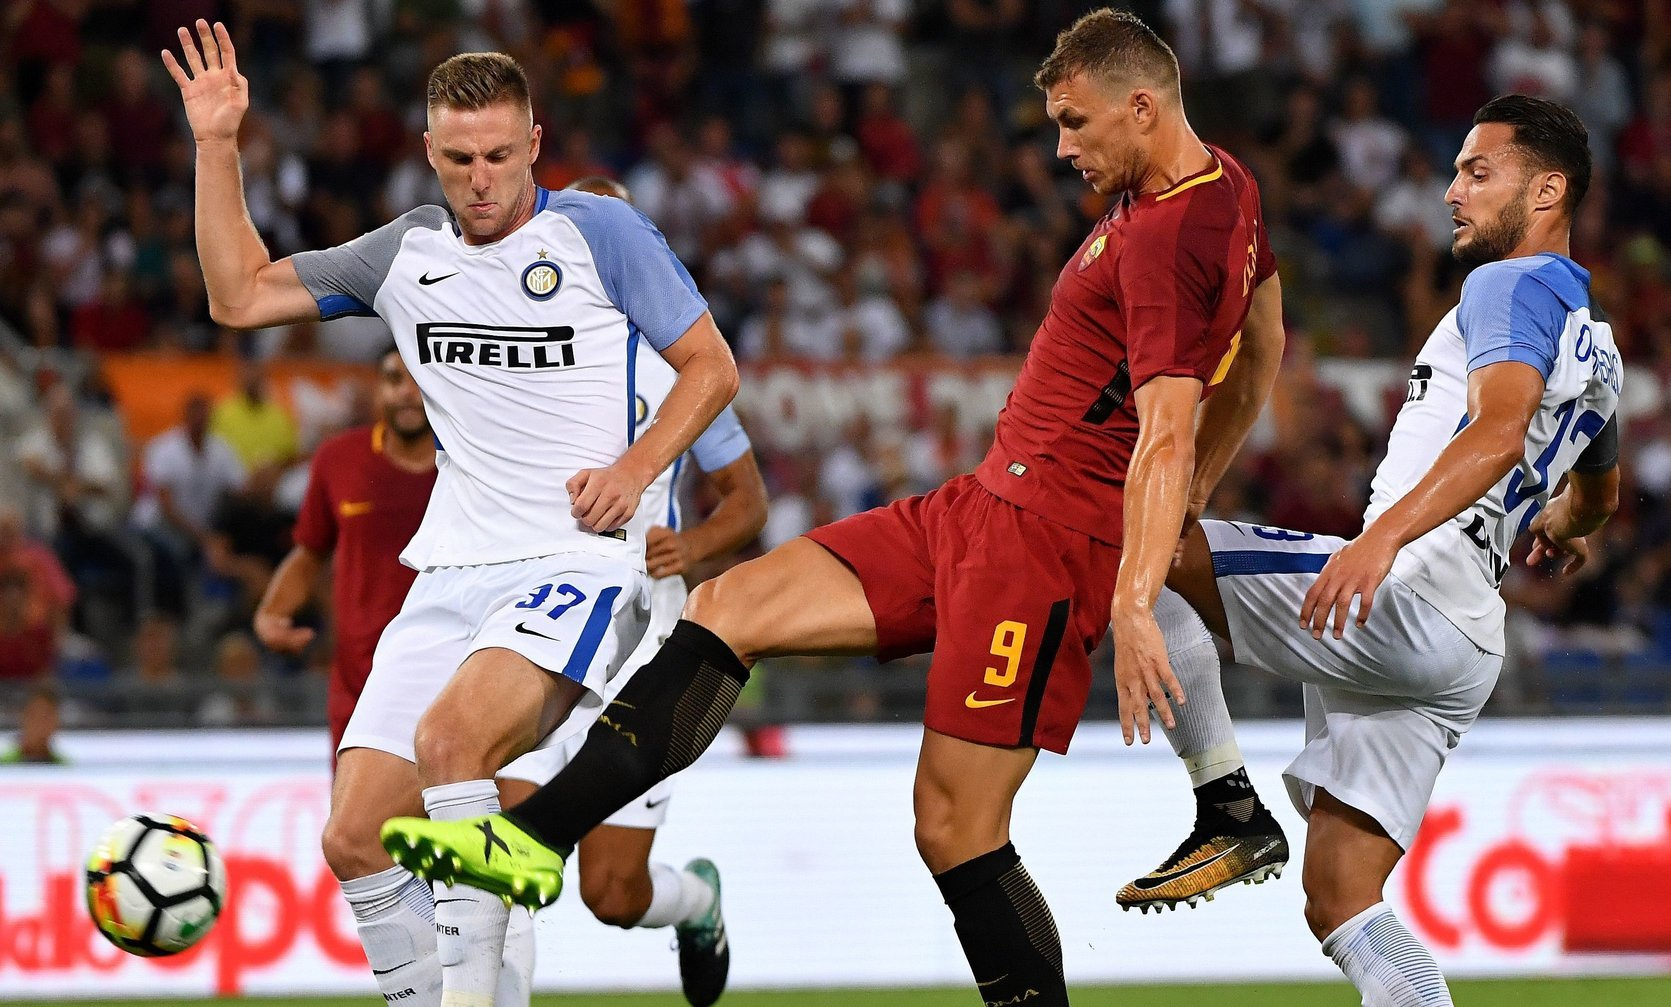 Edin Dzeko, Inter vs. Roma